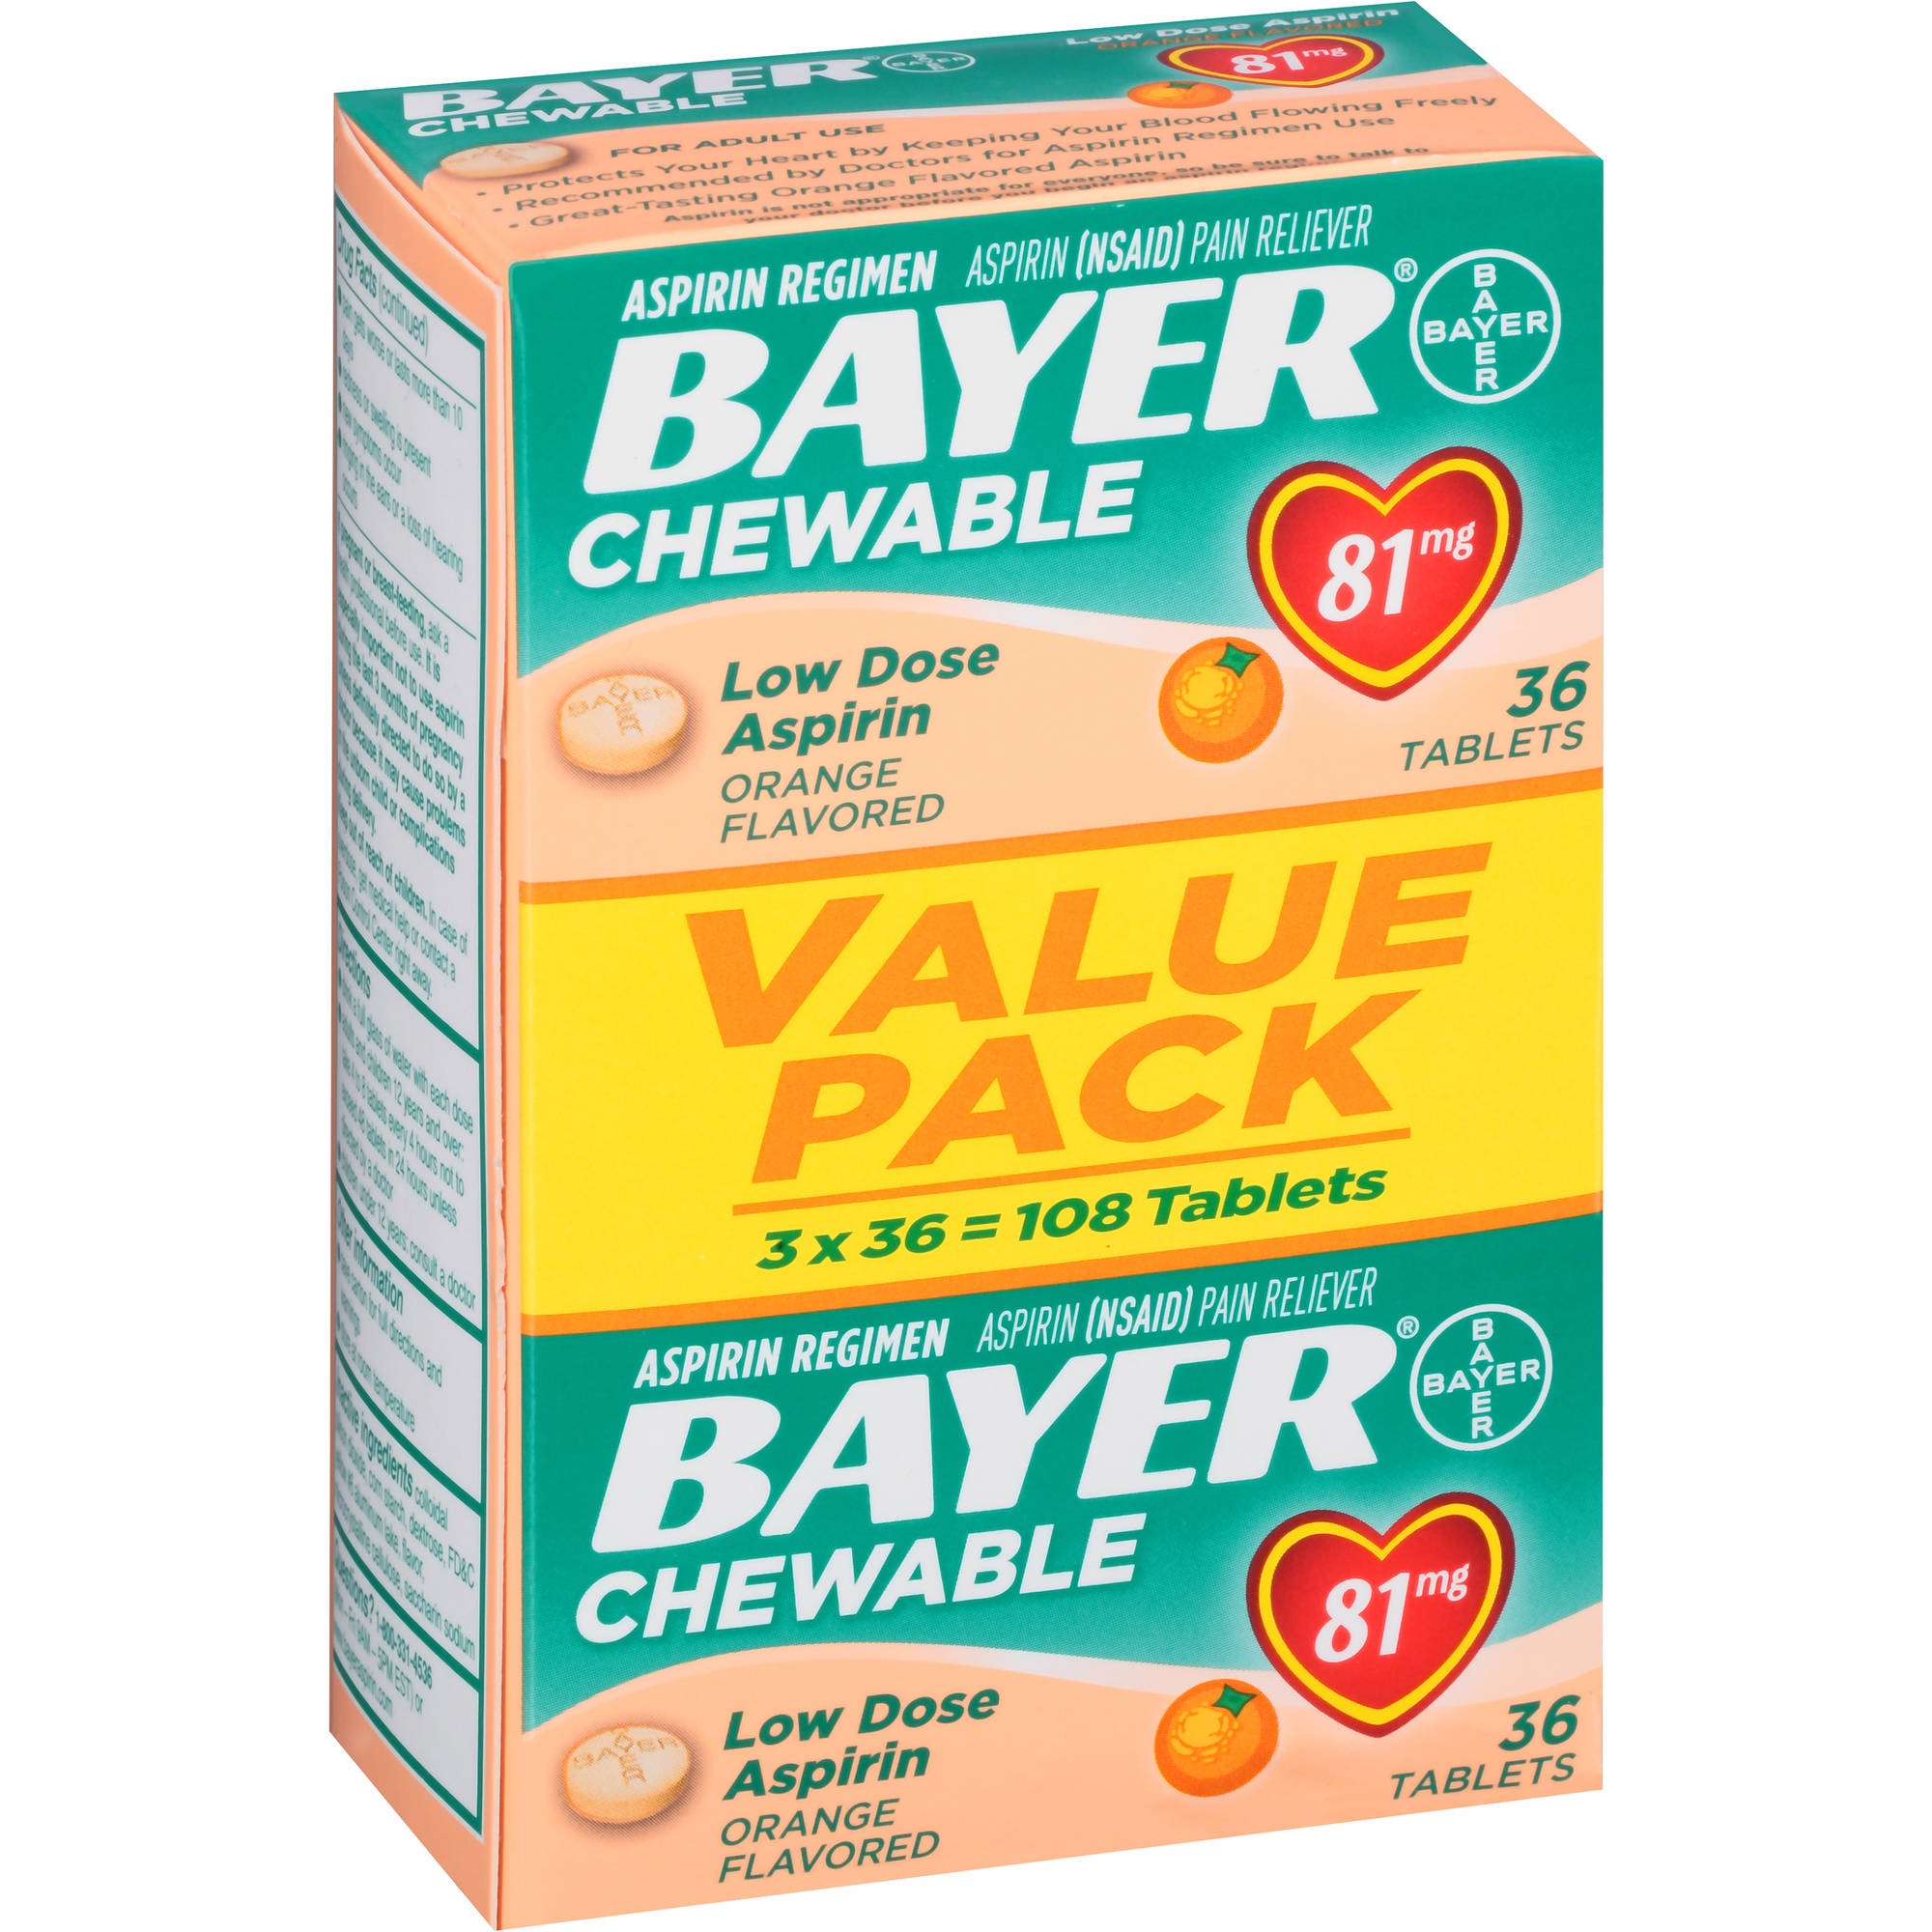 Bayer Chewable Orange Flavored Low Dose Aspirin, 81mg, 36 count, (Pack of 3)